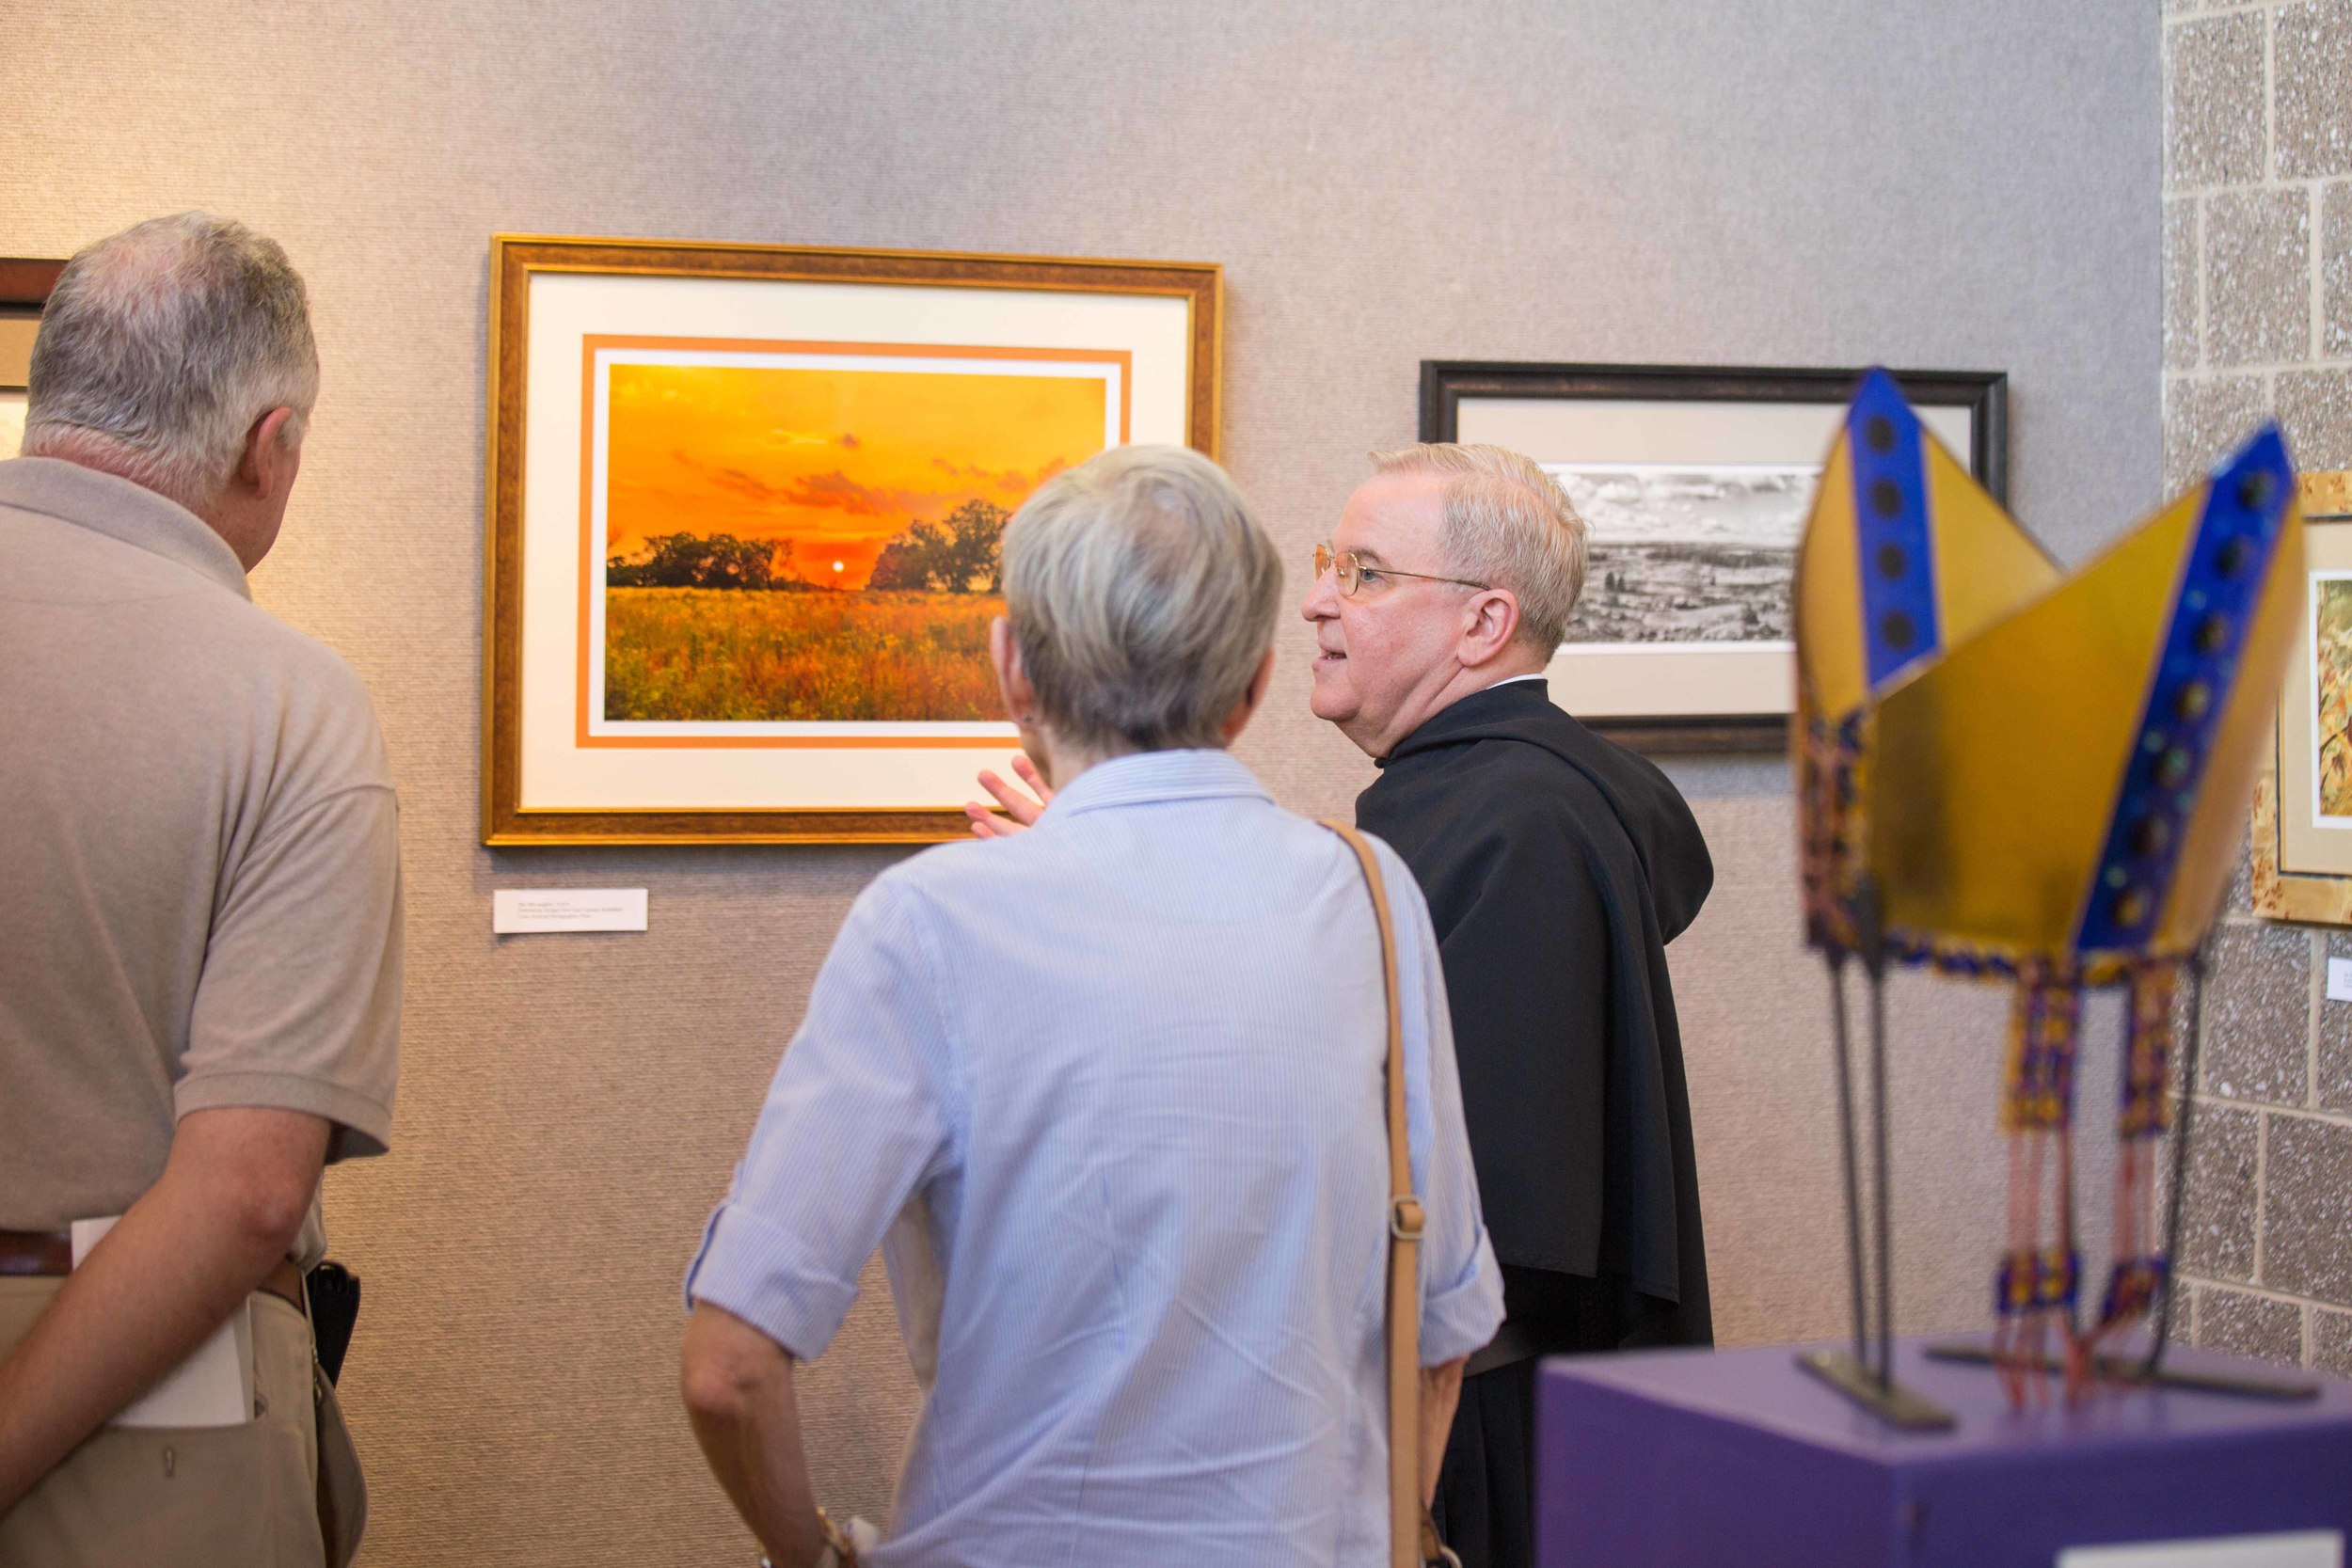 Father Dan McLaughlin, O.S.A., discusses his photograph with visitors to the art gallery in the Connelly Center